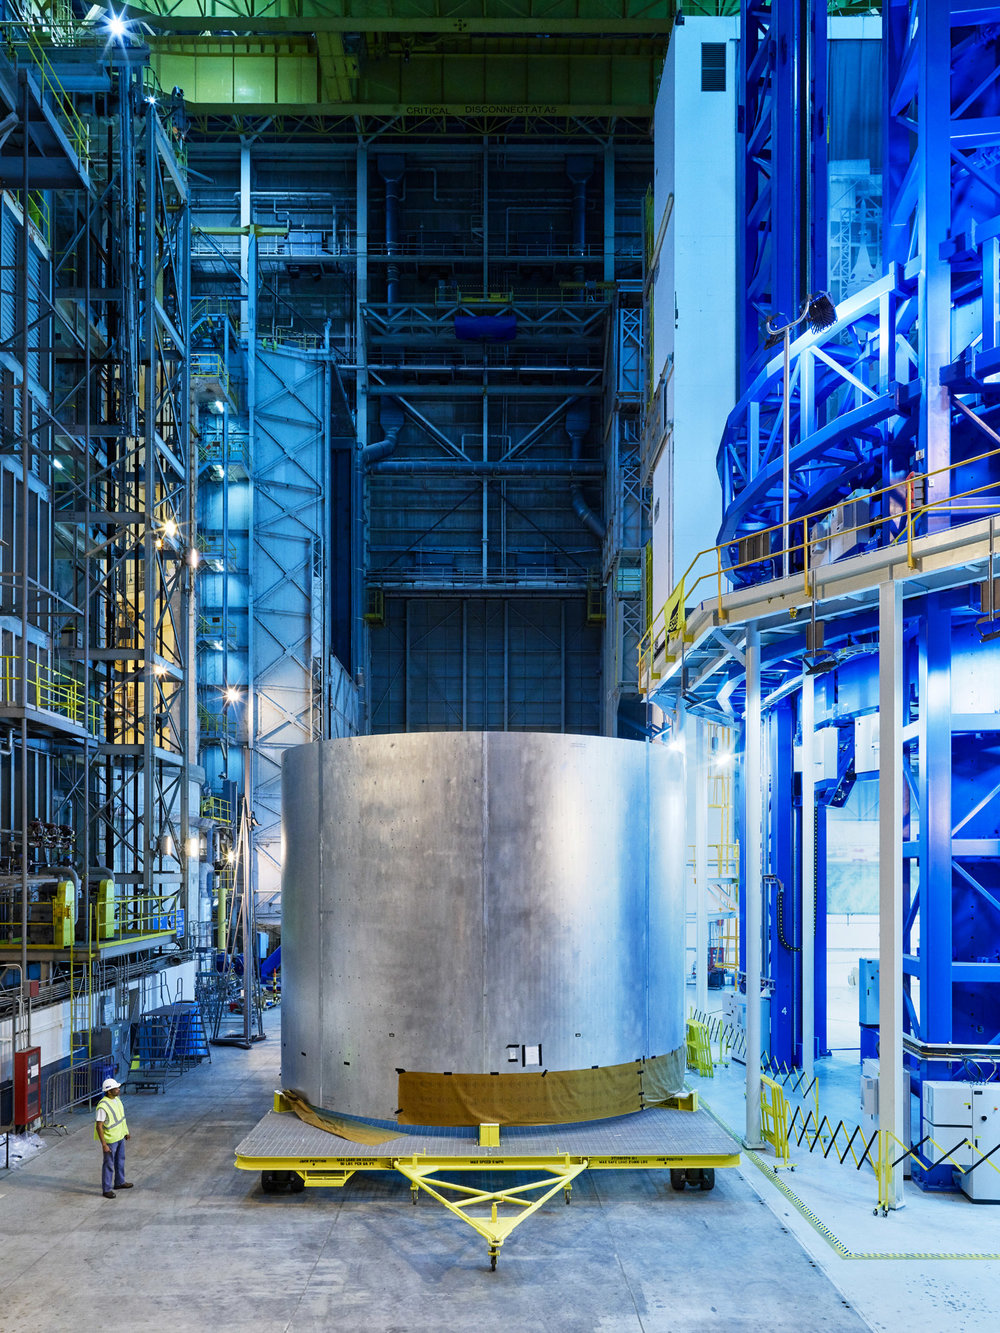 SLS Rocket Hydrogen Tank, NASA Michoud Assembly Facility, New Orleans, Louisiana, 2016